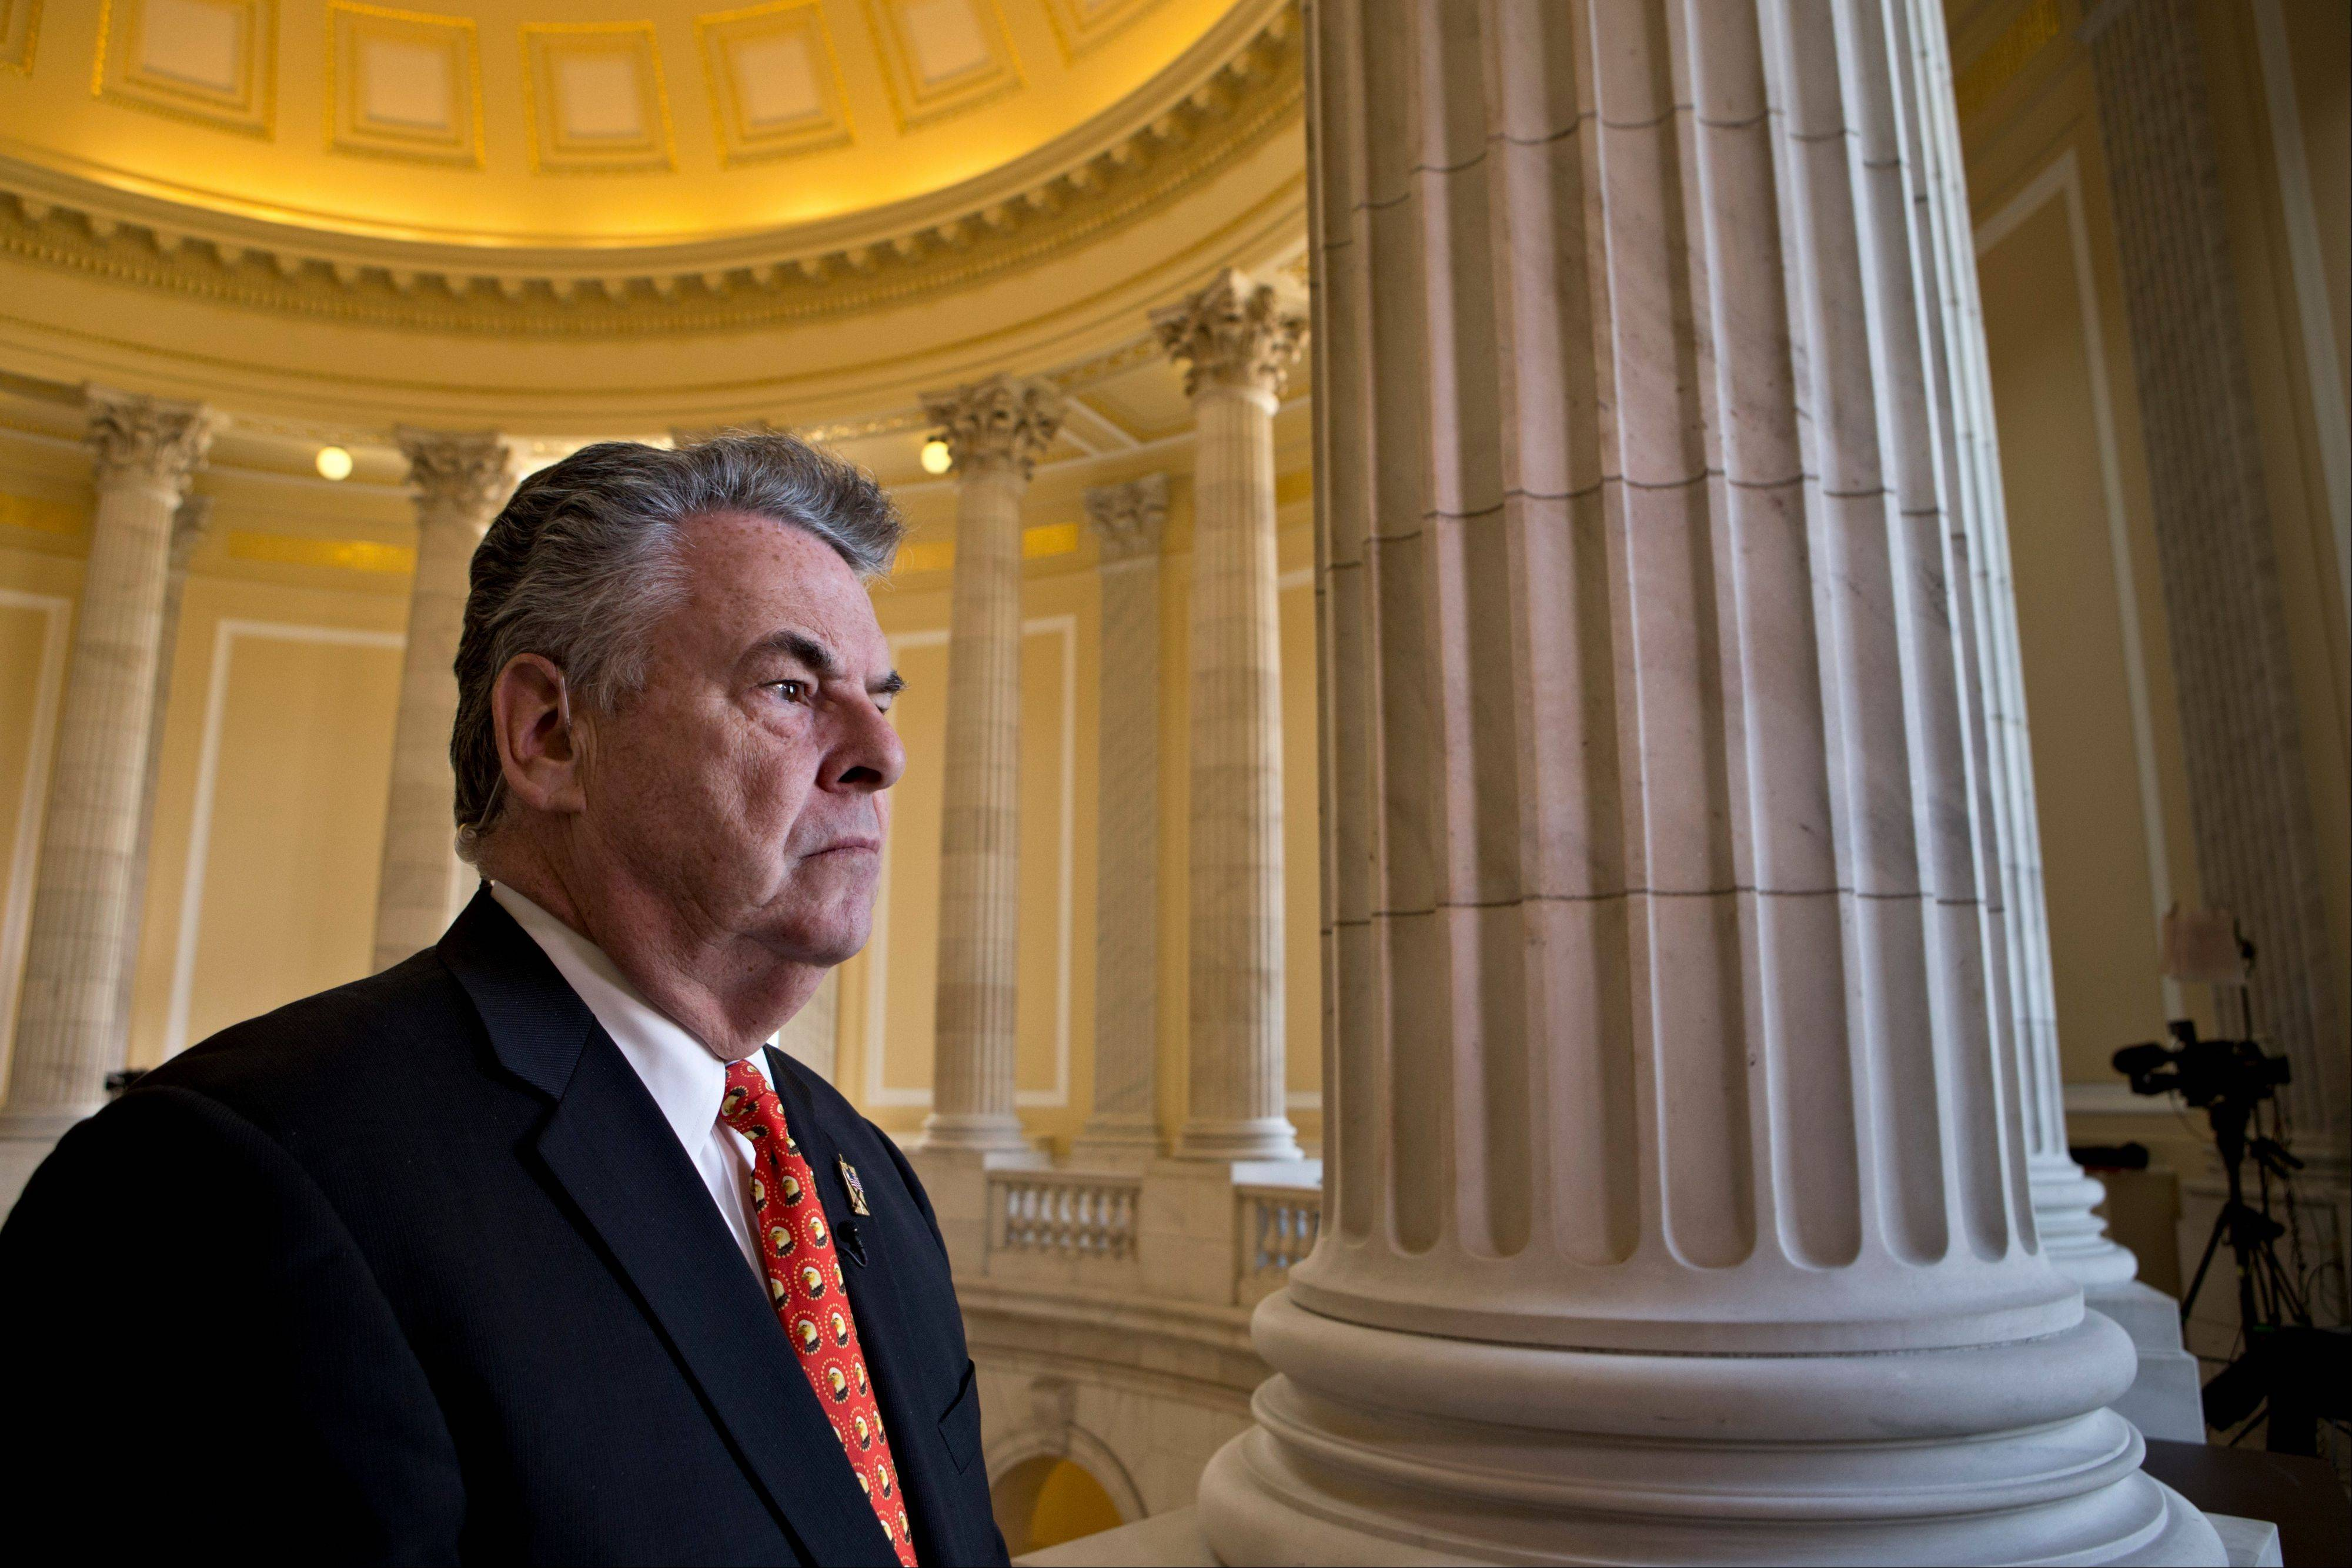 Rep. Peter King, a New York Republican, whose district includes Long Island, expresses his anger and disappointment Wednesday during a cable TV interview on Capitol Hill, after the House GOP leadership decided late New Year's Day to allow the current term of Congress to